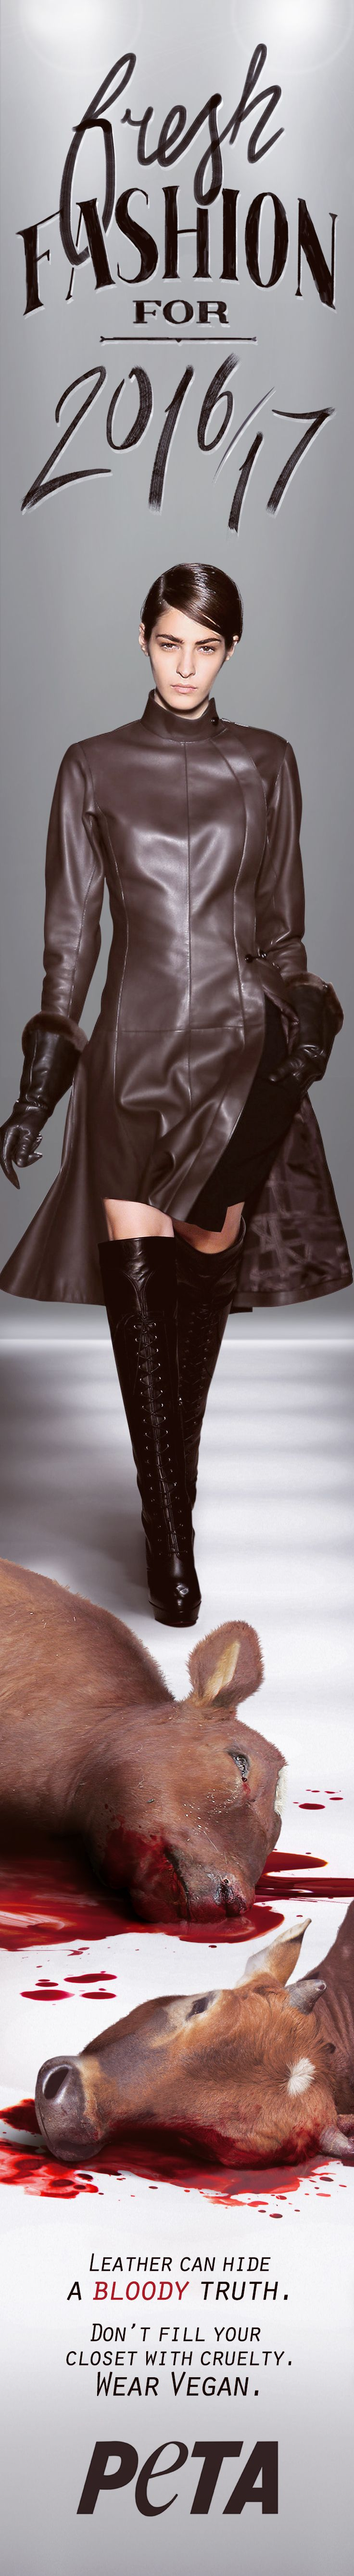 Fashion Trends for Fall/Winter 2016-2017. Punk-rock is back with leather minis, worn out tights, and the flicker of some sliver. Photo credit:fervent-adepte-de-la-modeviaVisualHunt/CC BY (https://www.flickr.com/photos/51528537@N08/8521443102/)